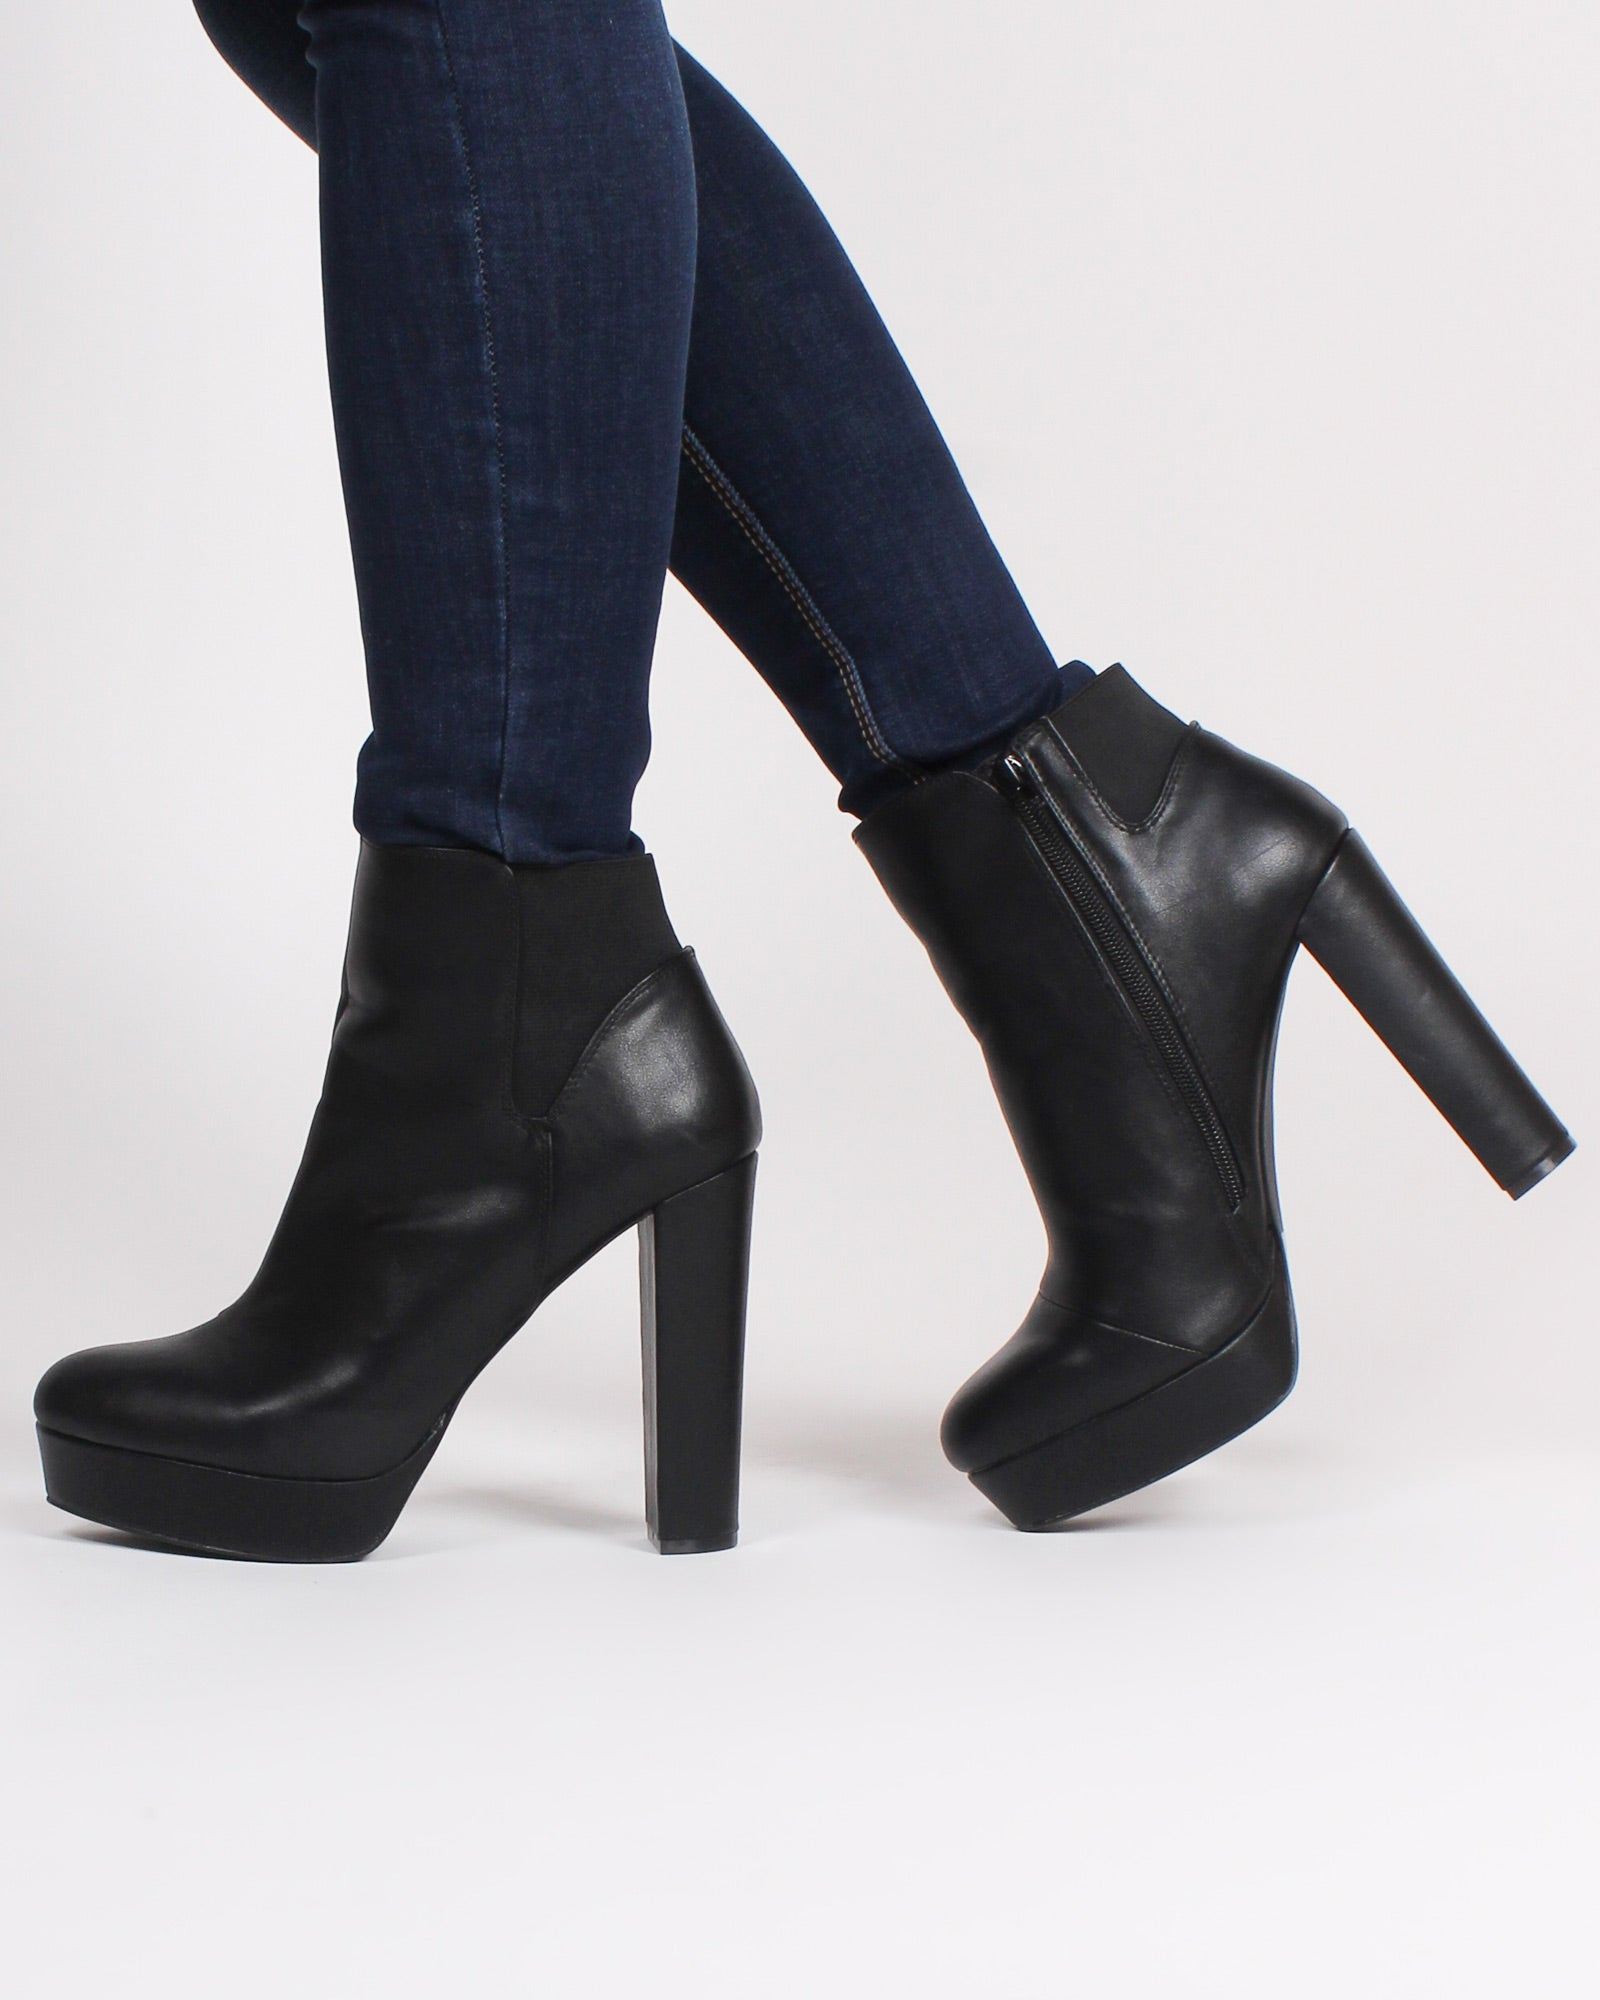 Fashion Q Shop Q Reno Chunky Heel Booties (Black) MASCARA-03X